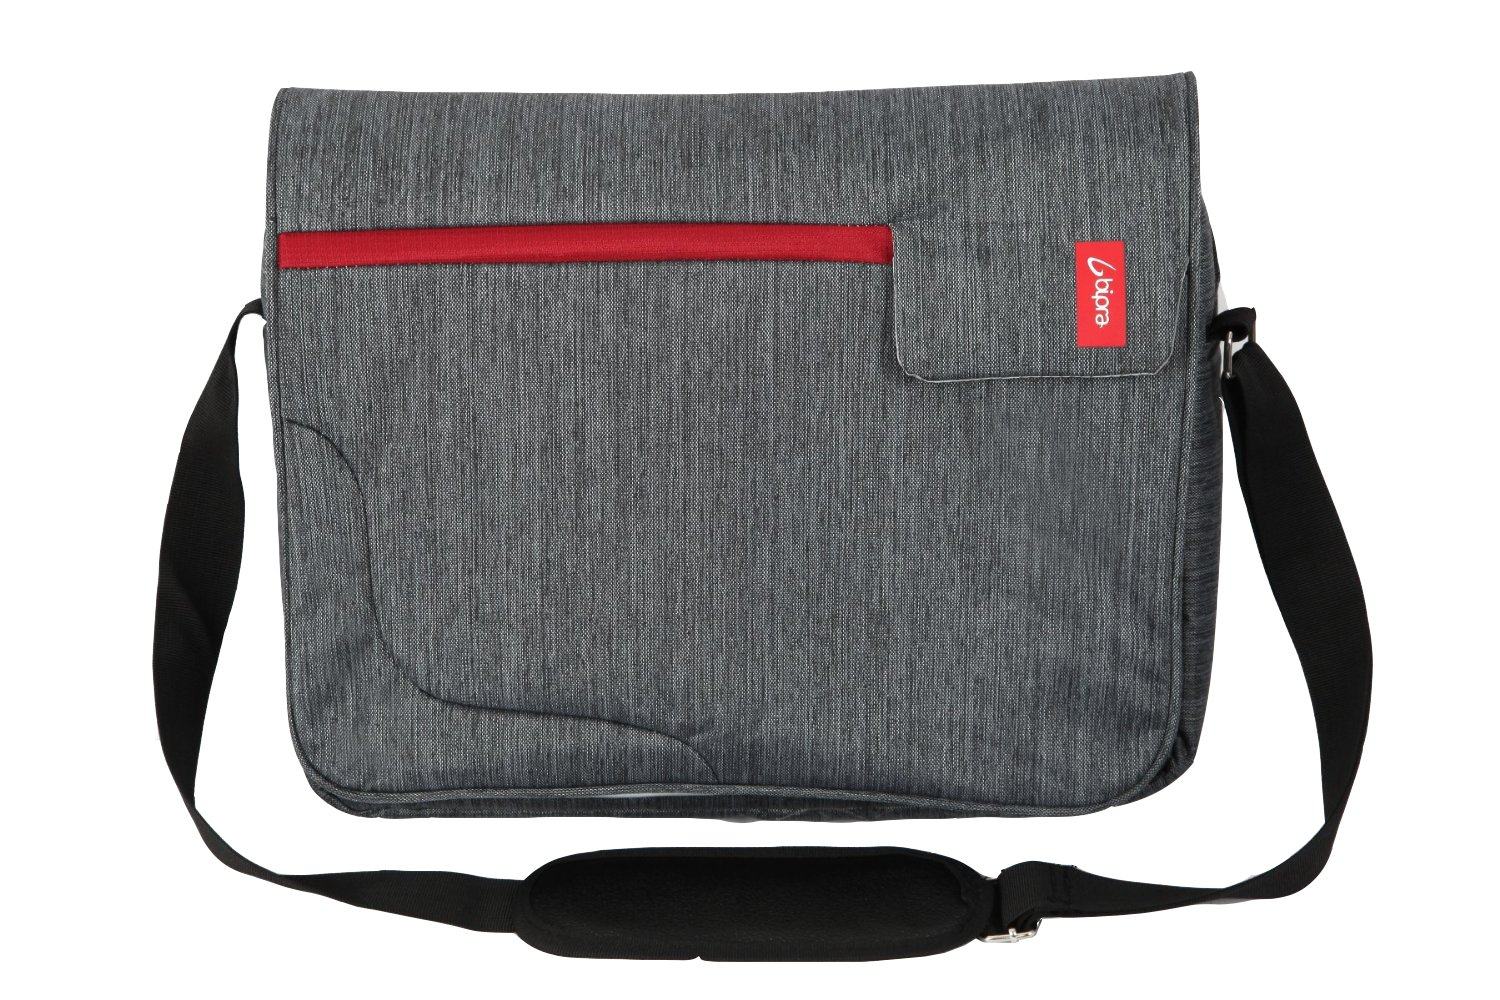 Bipra 15.6 Inch Laptop Messenger Bag Grey With Red Stripe Suitable for 15.6 Inch fits most Devices Netbooks, Laptop Computers, Tablets, ipad (Grey&Red) NTECeaq